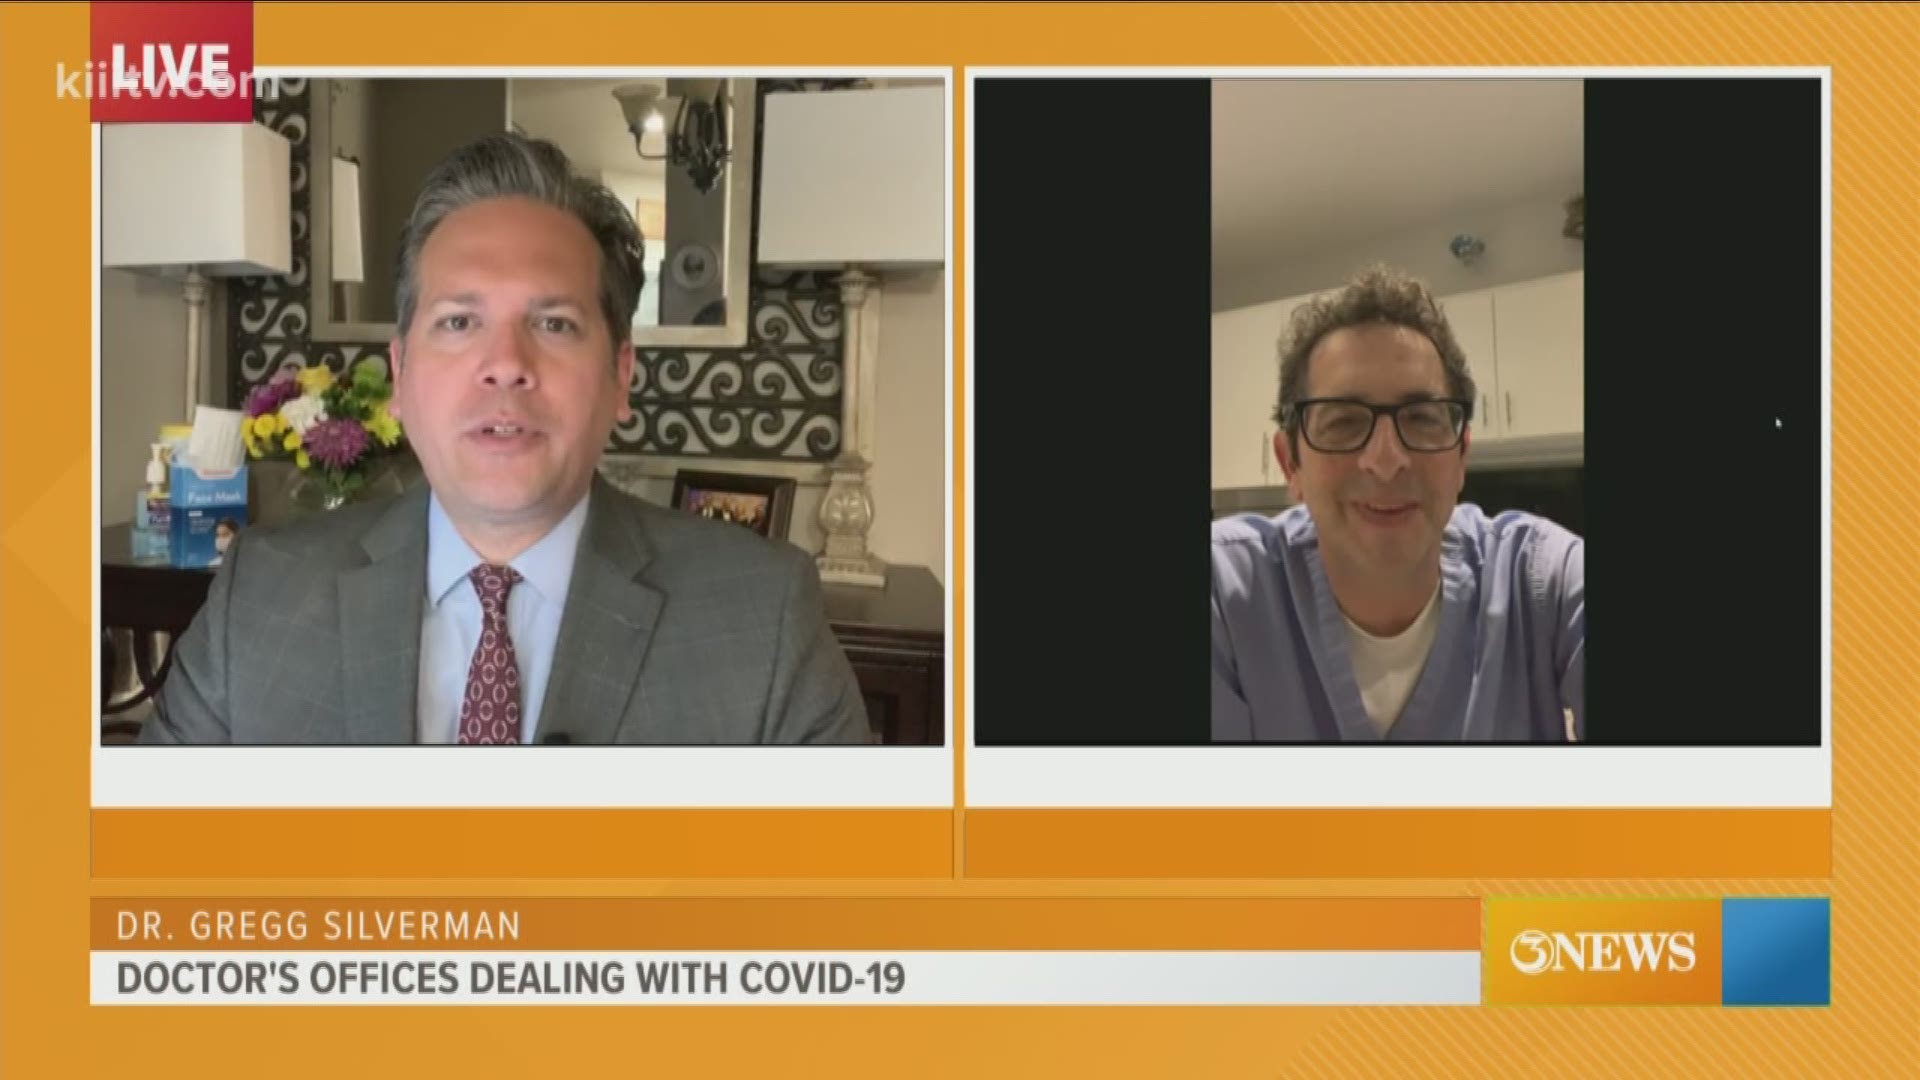 First Edition How Local Doctors Offices Are Dealing With Covid 19 Kiiitv Com